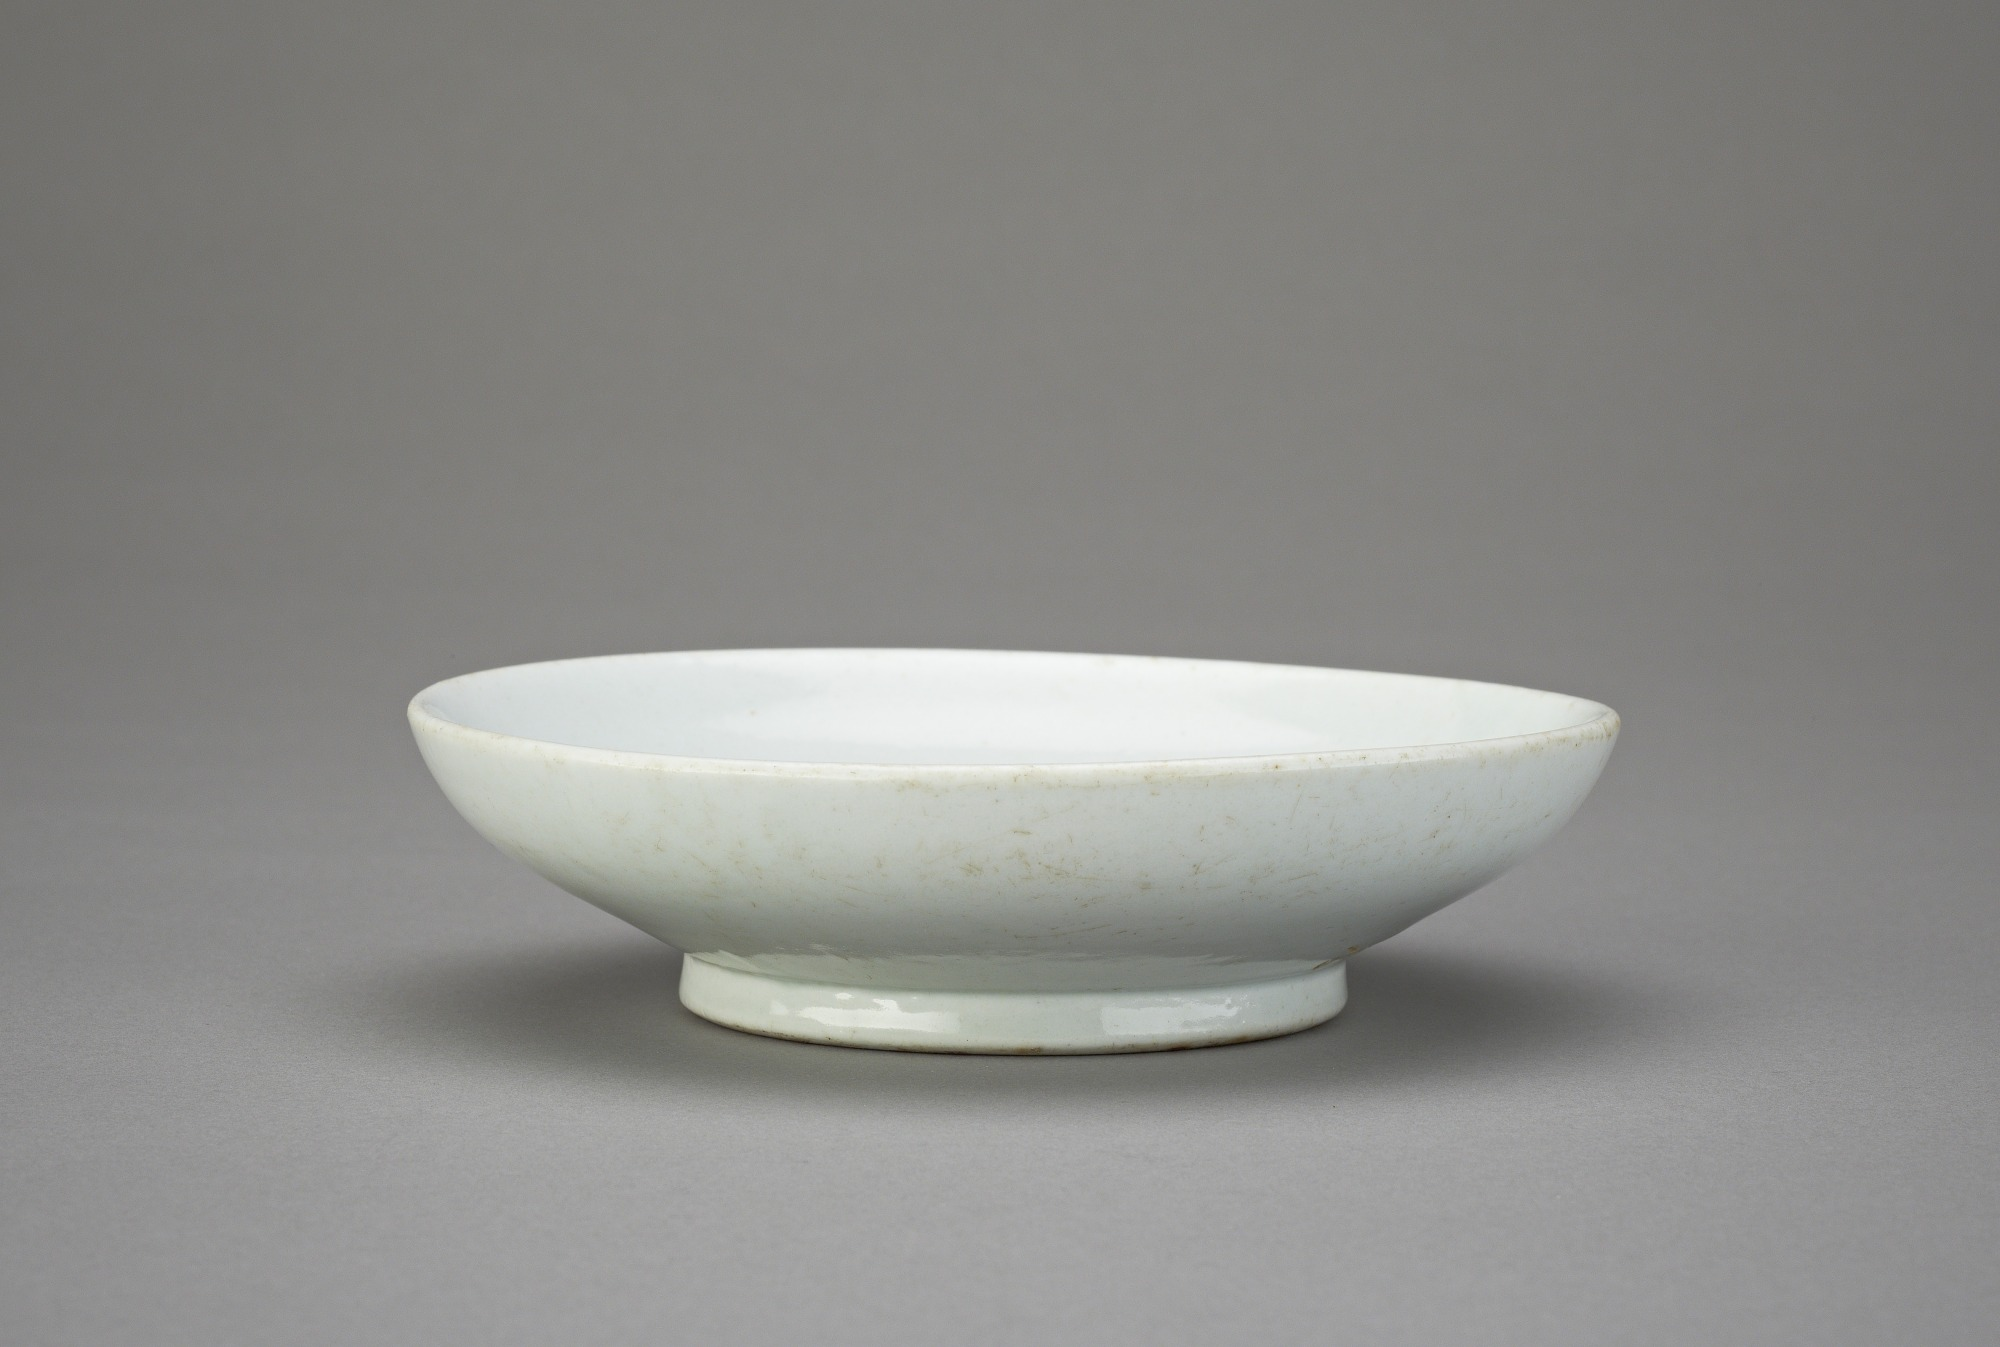 profile: Dish with inventory inscription dated 1832